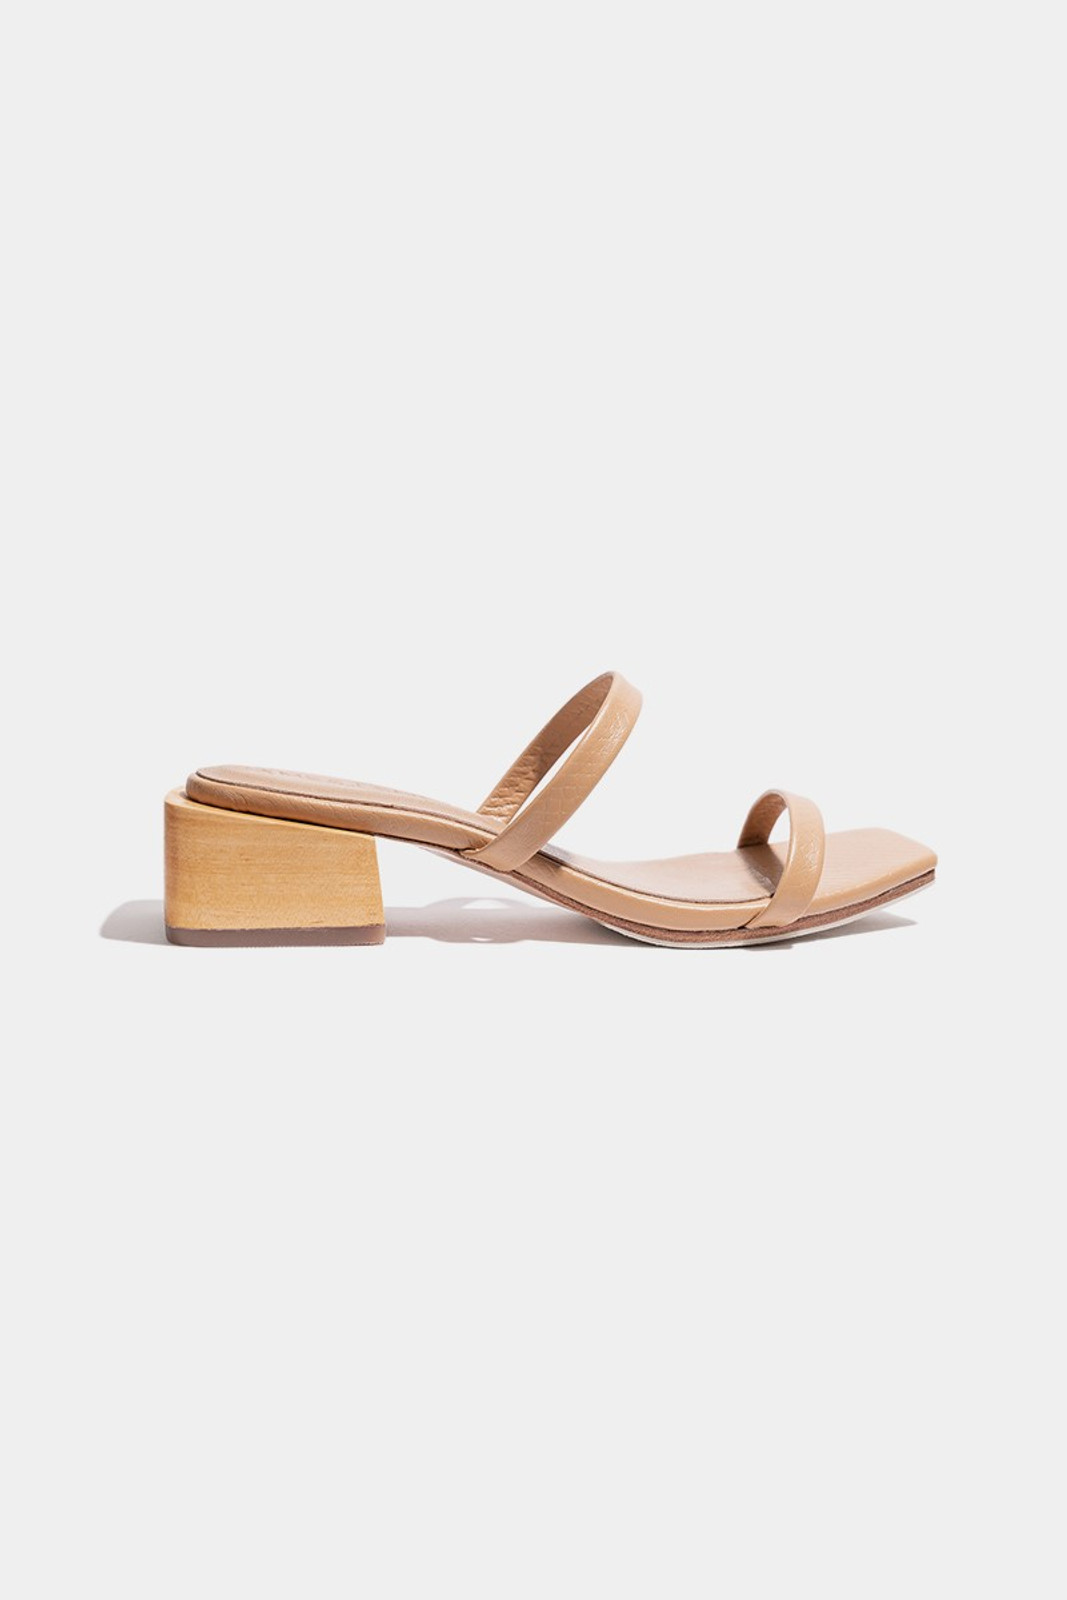 Elka Collective  SALO SANDAL Neutrals